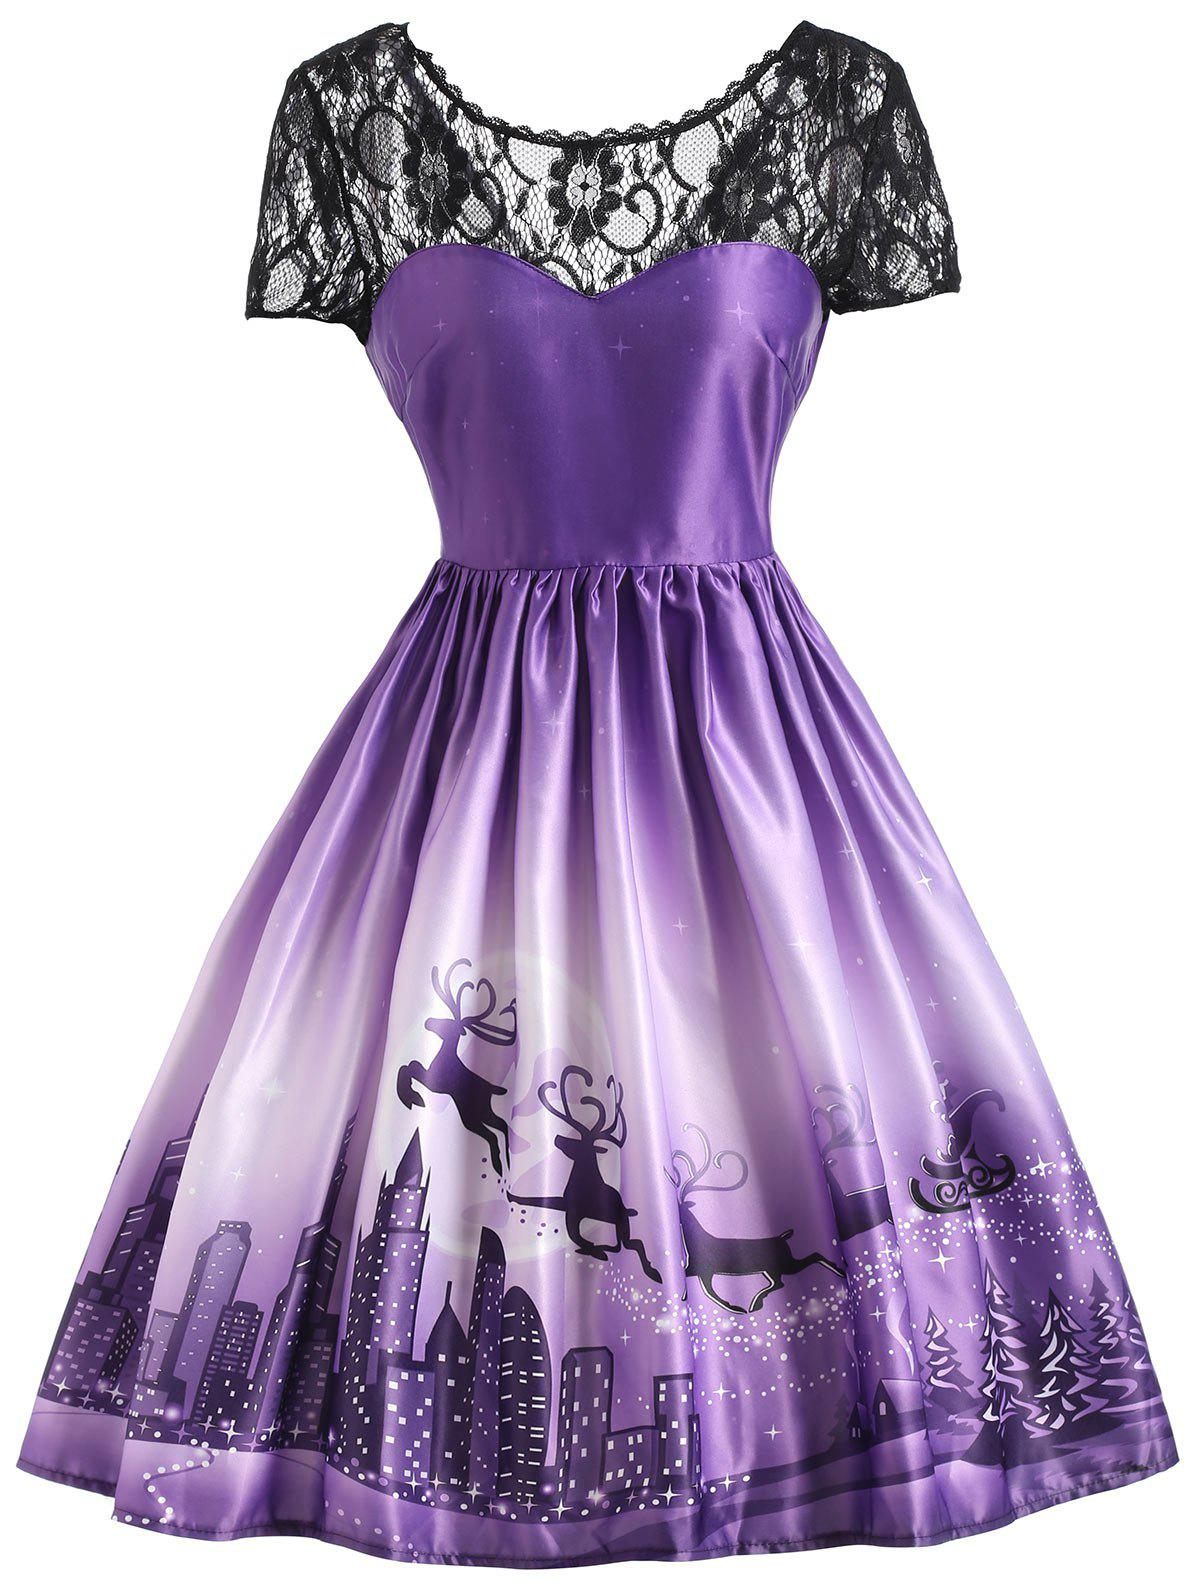 Christmas Elk Vintage Lace Yoke DressWOMEN<br><br>Size: M; Color: PURPLE; Style: Vintage; Material: Cotton,Polyester; Silhouette: A-Line; Dresses Length: Knee-Length; Neckline: Round Collar; Sleeve Length: Short Sleeves; Embellishment: Lace; Pattern Type: Print; With Belt: No; Season: Fall,Spring,Summer; Weight: 0.3800kg; Package Contents: 1 x Dress;